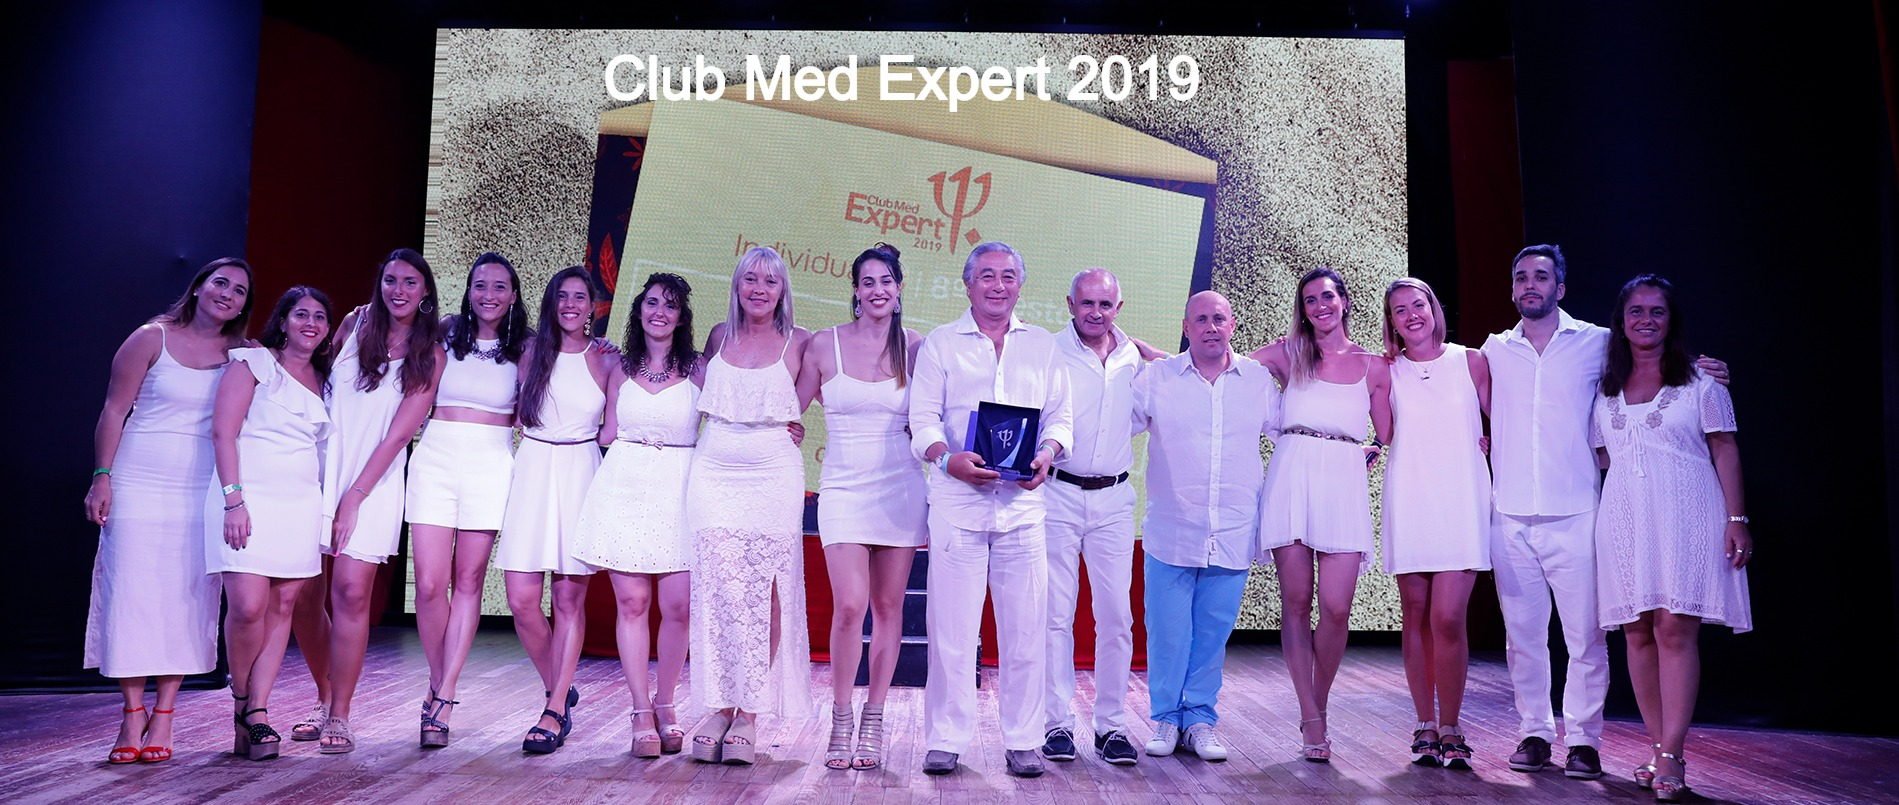 premio club med expert 2019_edited